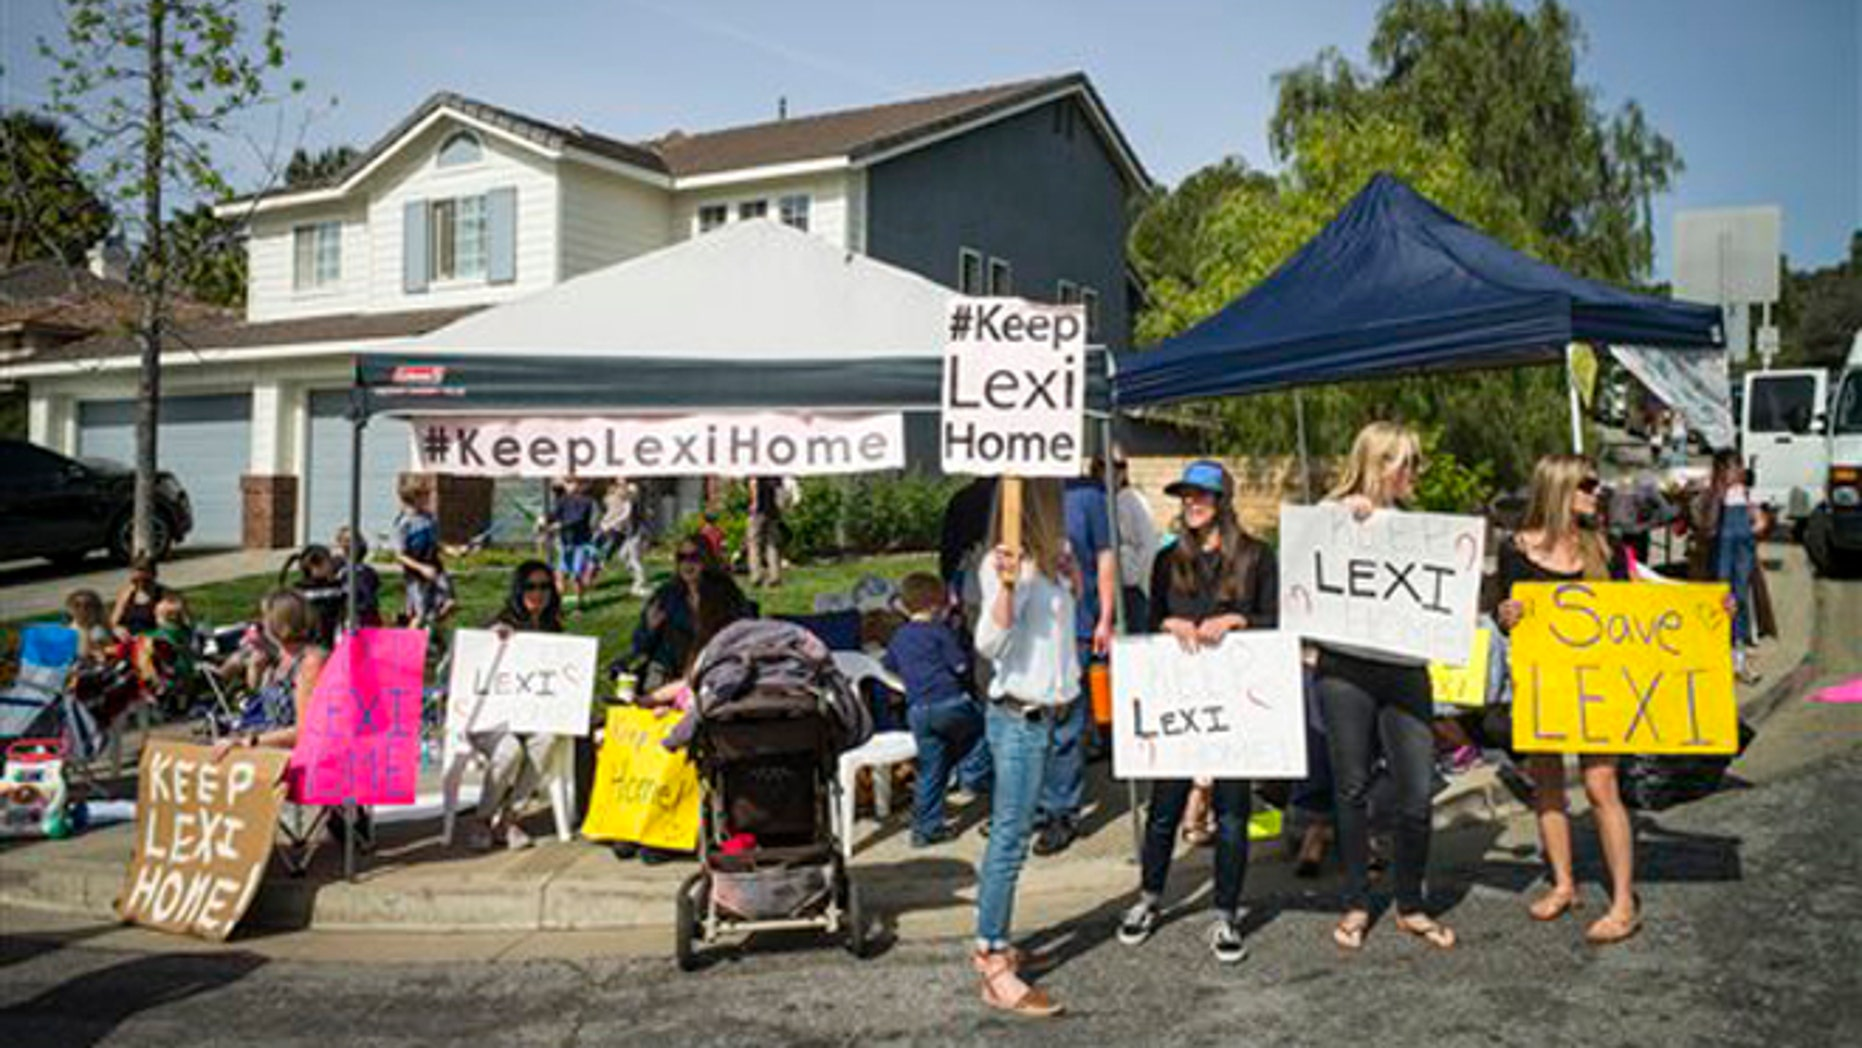 Supporters of Lexi's foster family hold a rally for the family outside Lexi's foster home in Santa Clarita, Calif., Monday, March 21, 2016.